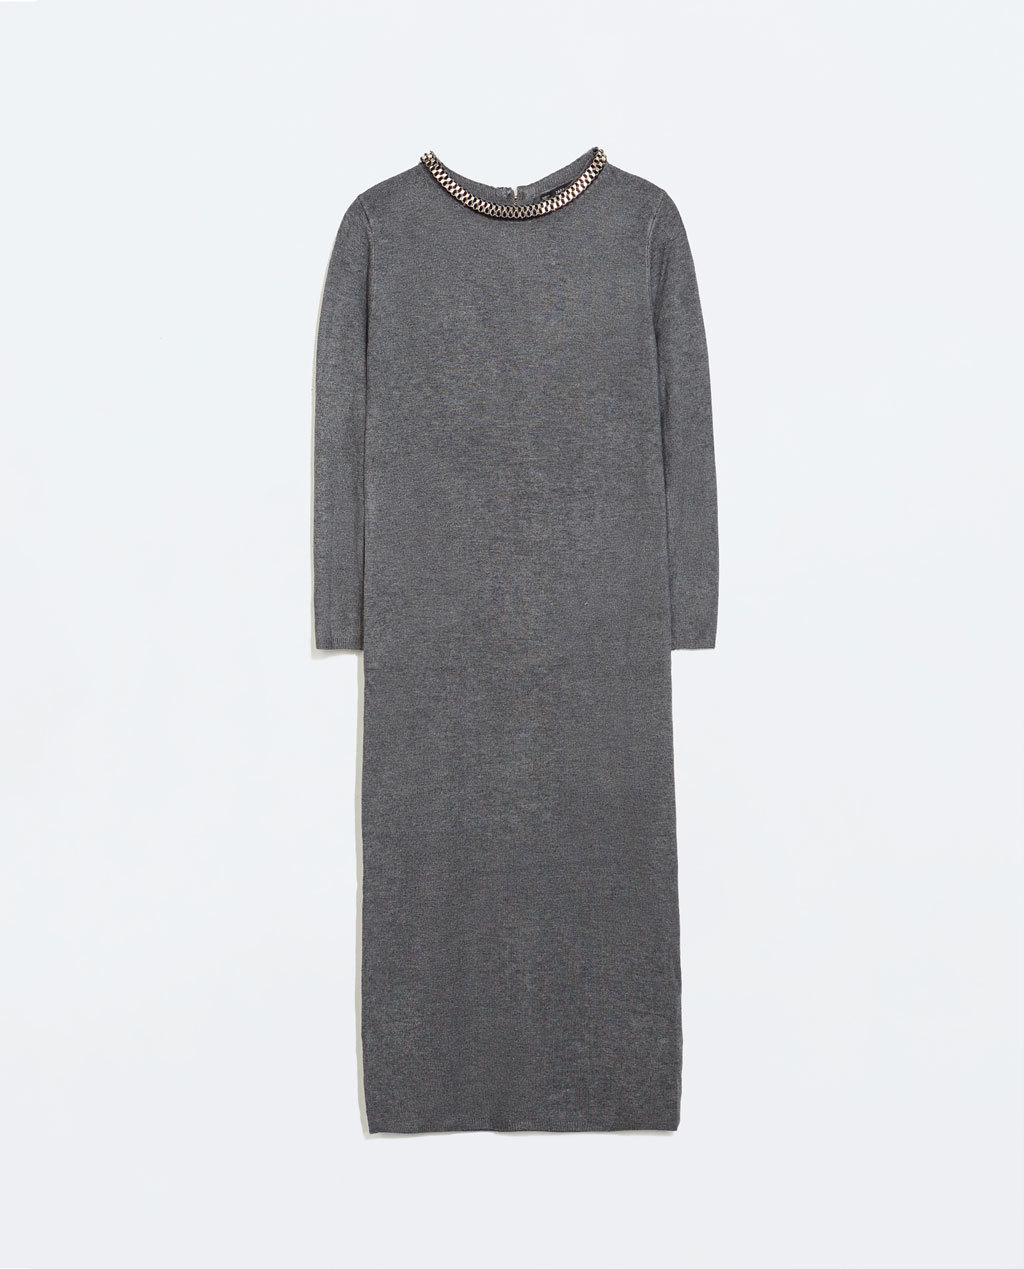 Dress With Detail On The Collar - style: jumper dress; neckline: round neck; pattern: plain; predominant colour: light grey; occasions: casual, creative work; length: just above the knee; fit: body skimming; fibres: viscose/rayon - stretch; sleeve length: half sleeve; sleeve style: standard; pattern type: fabric; texture group: other - light to midweight; embellishment: beading; season: a/w 2014; wardrobe: highlight; embellishment location: waist